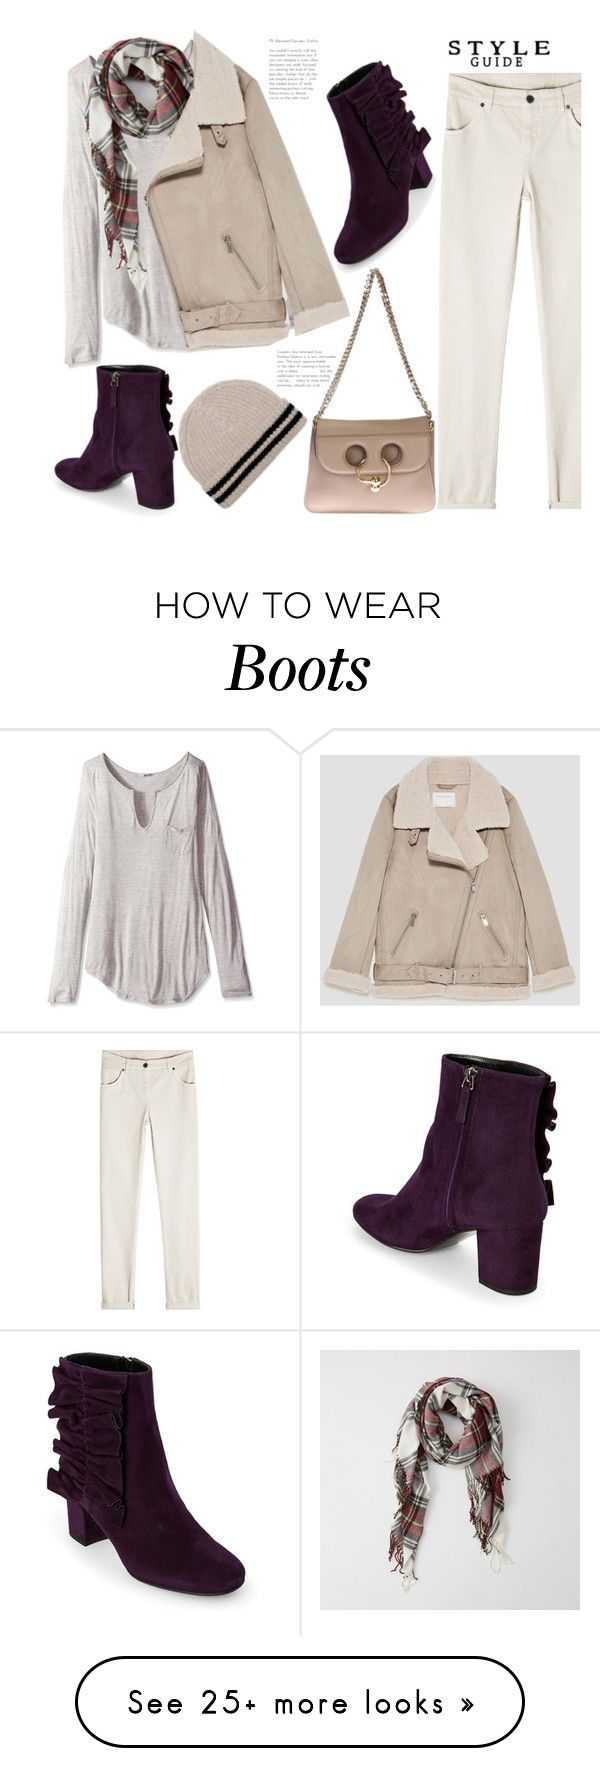 """""""Winter White"""" by badassbabyboomer on Polyvore featuring LAmade, Abercrombie & Fitch, Jakke, Zadig & Voltaire and Brunello Cucinelli"""